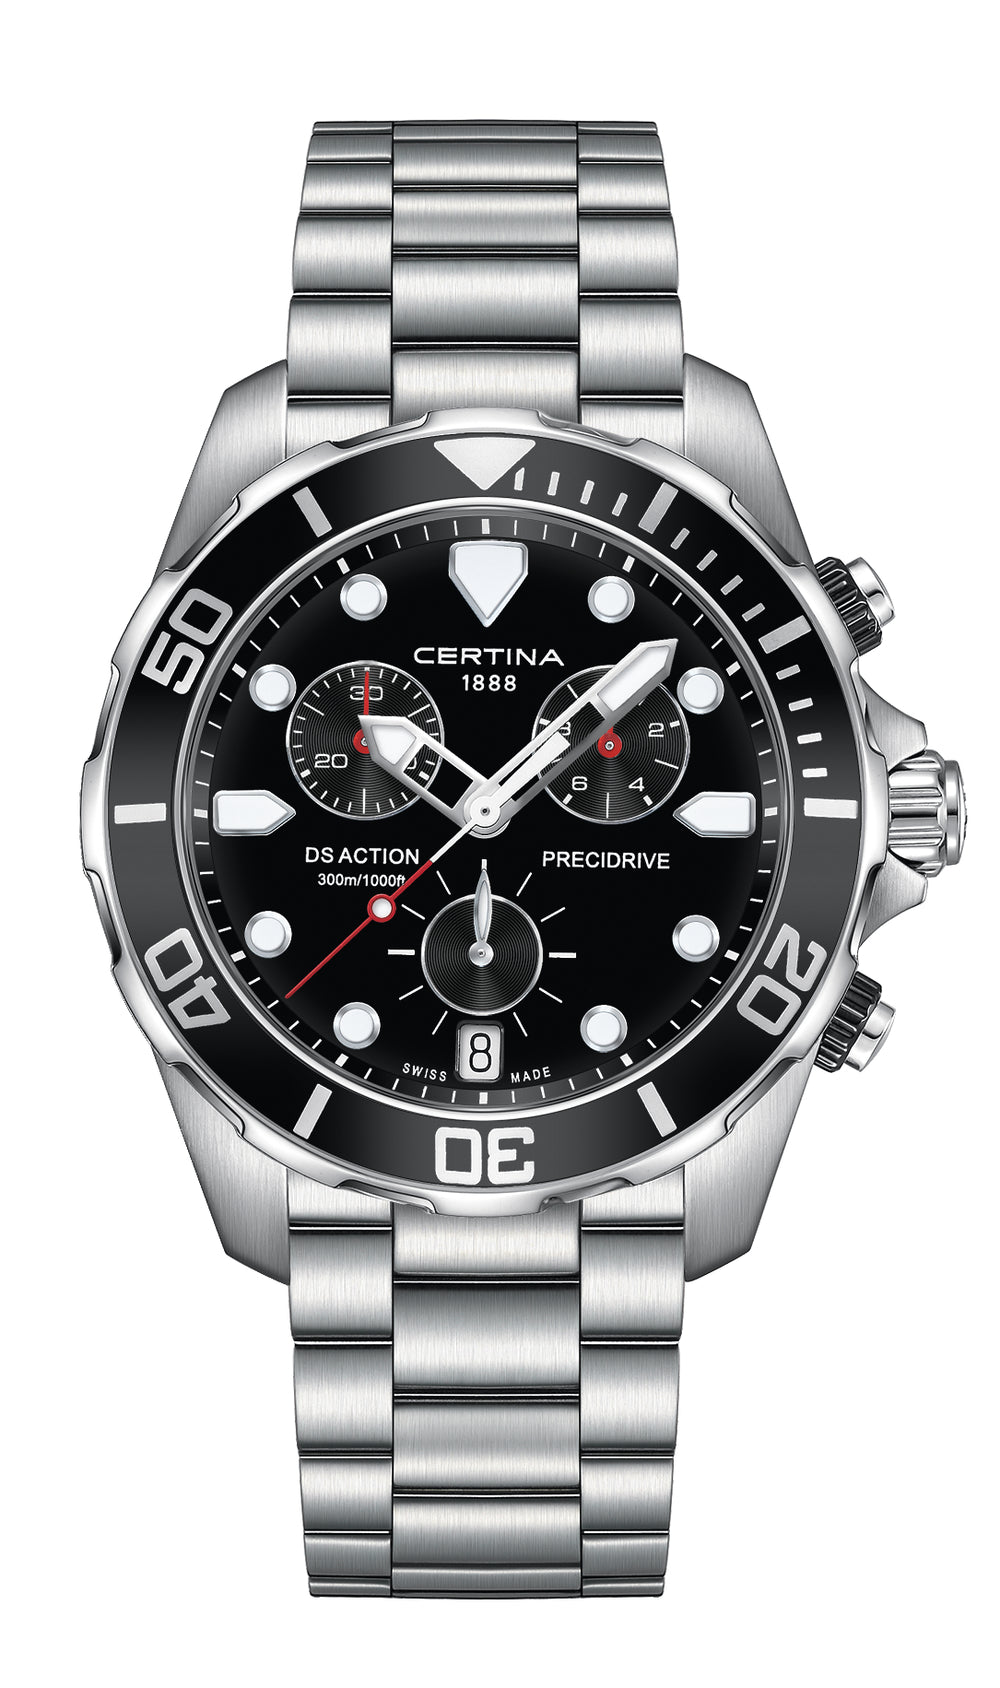 CERTINA C032.417.11.051.00 DS Action Chronograph miesten rannekello